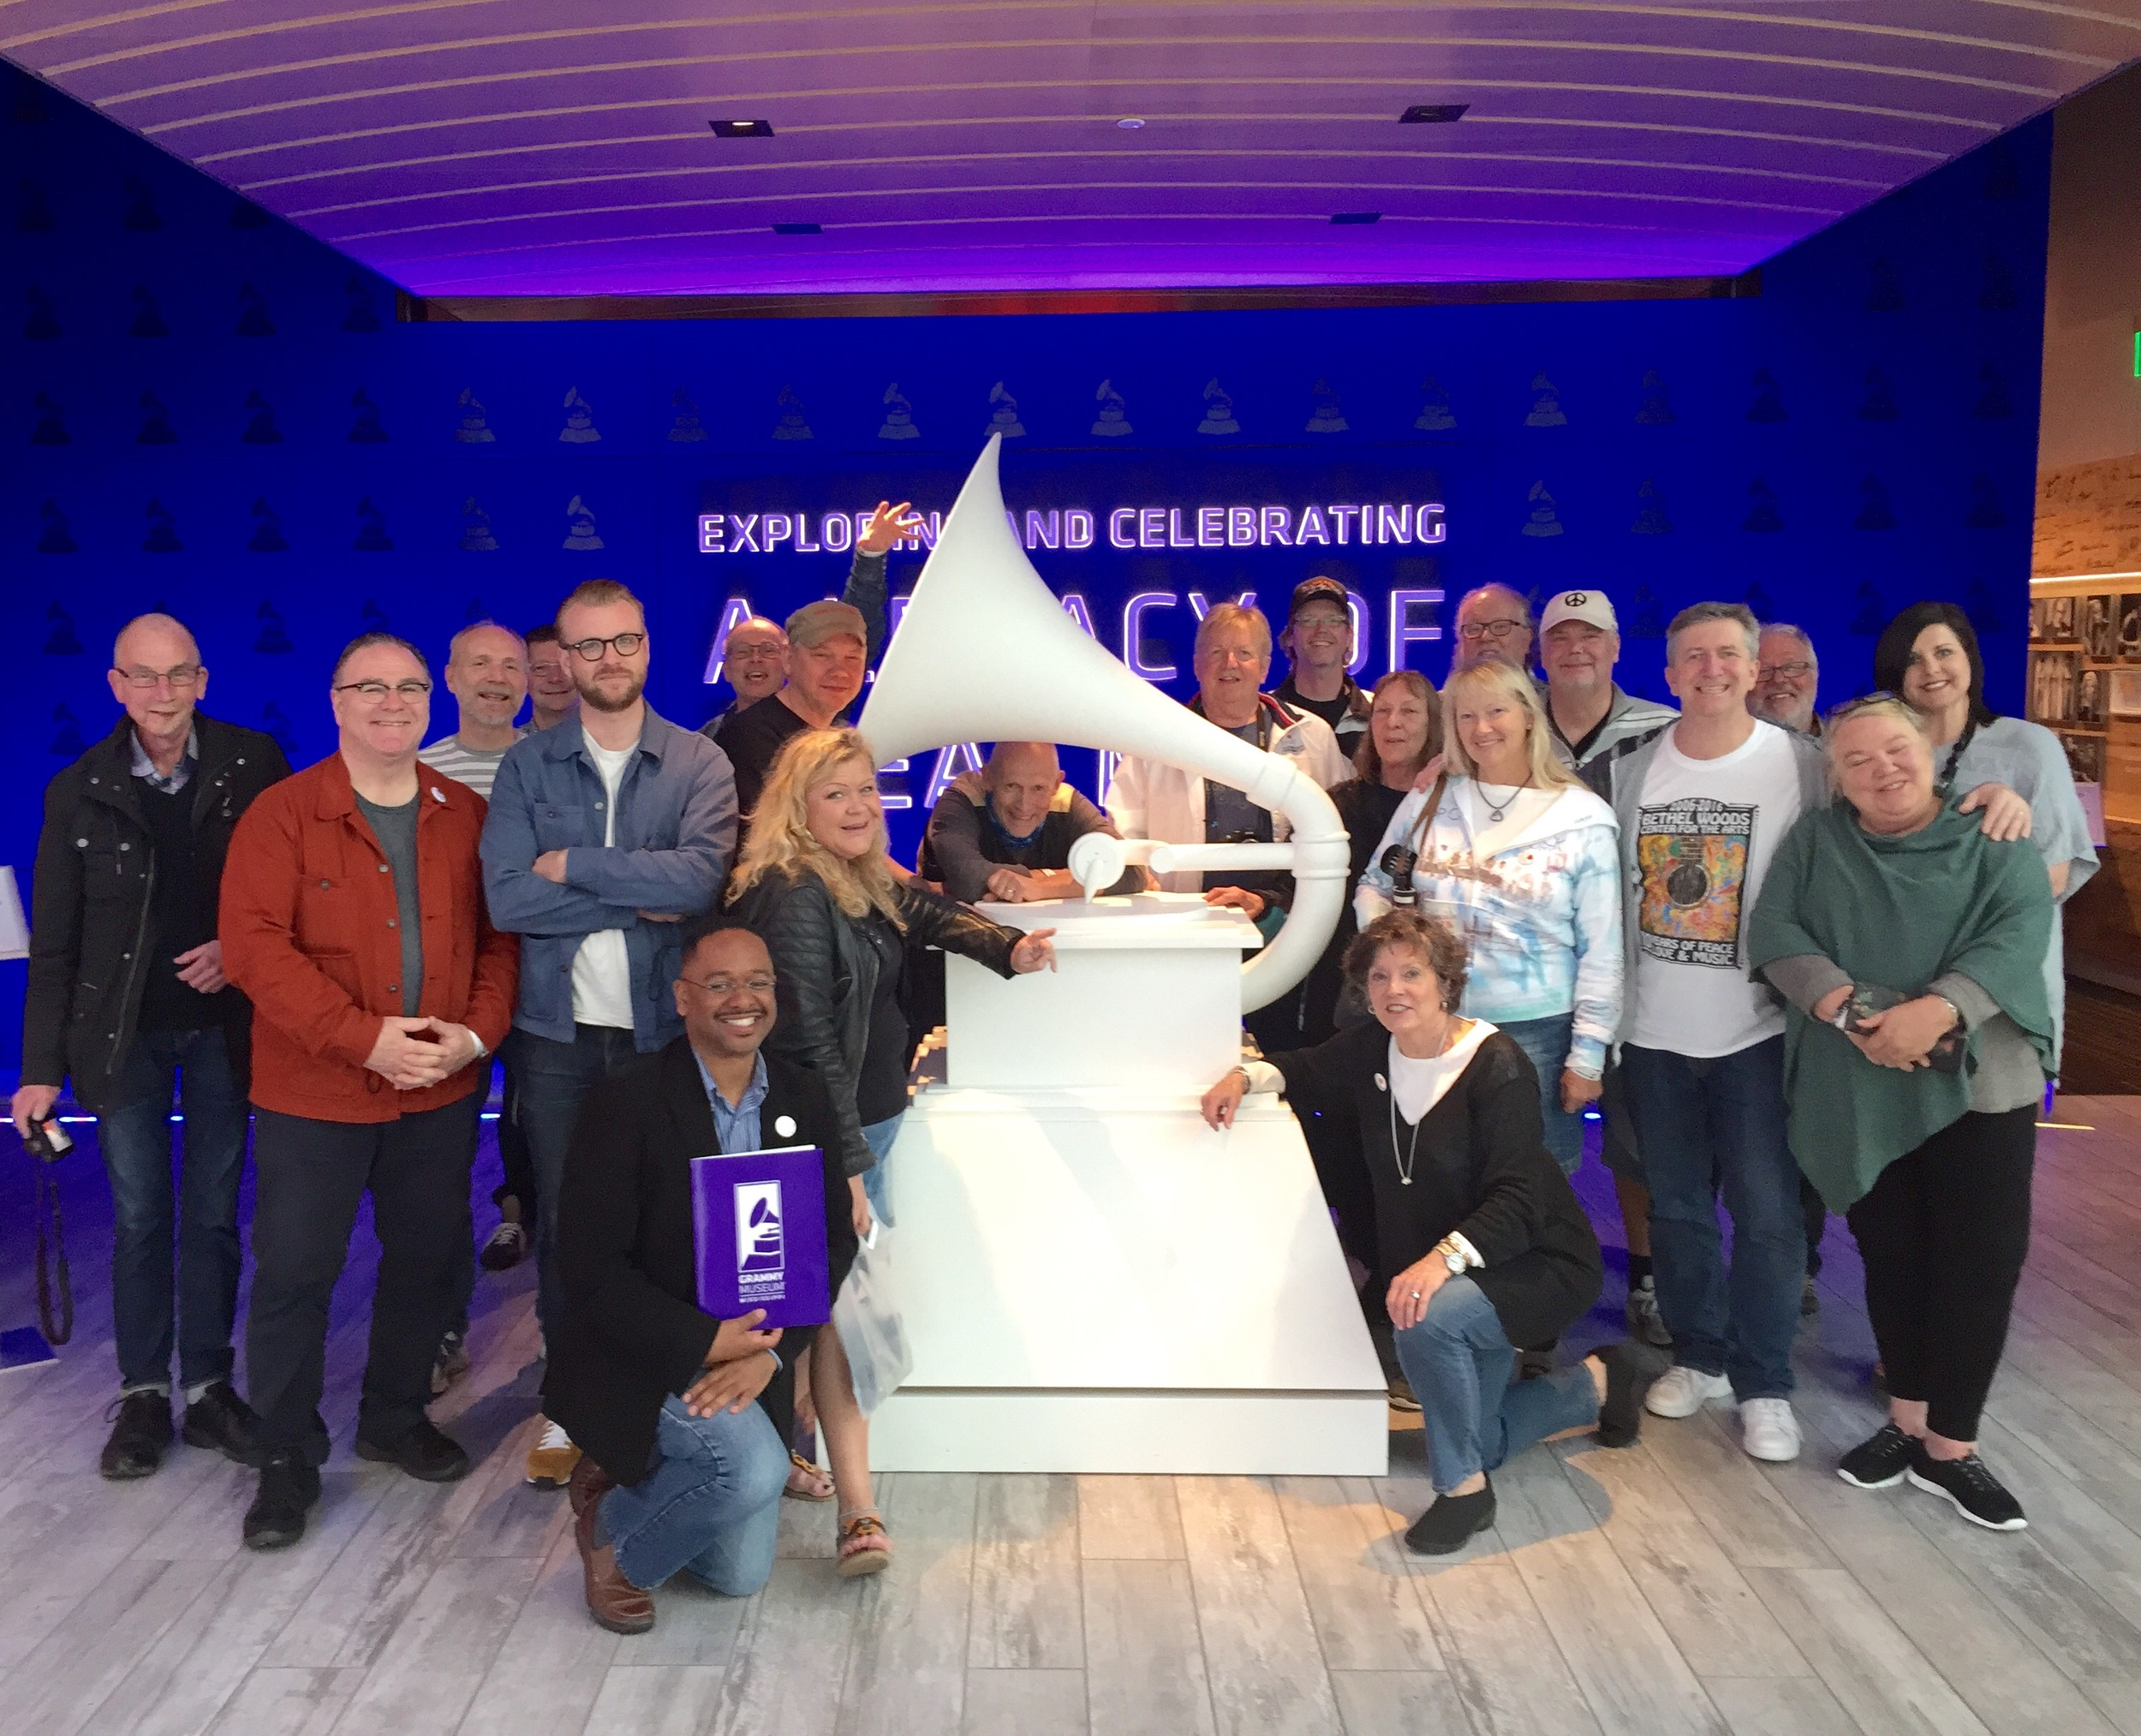 A giant replica of the GRAMMY award greets visitors at the entrance of the new museum in Cleveland, and the group of travelers from Sweden takes advantage of the iconic symbol for a group photo. Joining the tour are Dr. Rolando Herts (bottom left), director of the Delta Center forCulture and Learning, Lee Aylward (bottom right), the Delta Center's Program Associate for Education and Community Outreach, and Emily Havens (back right), Director of GRAMMY Museum Mississippi.